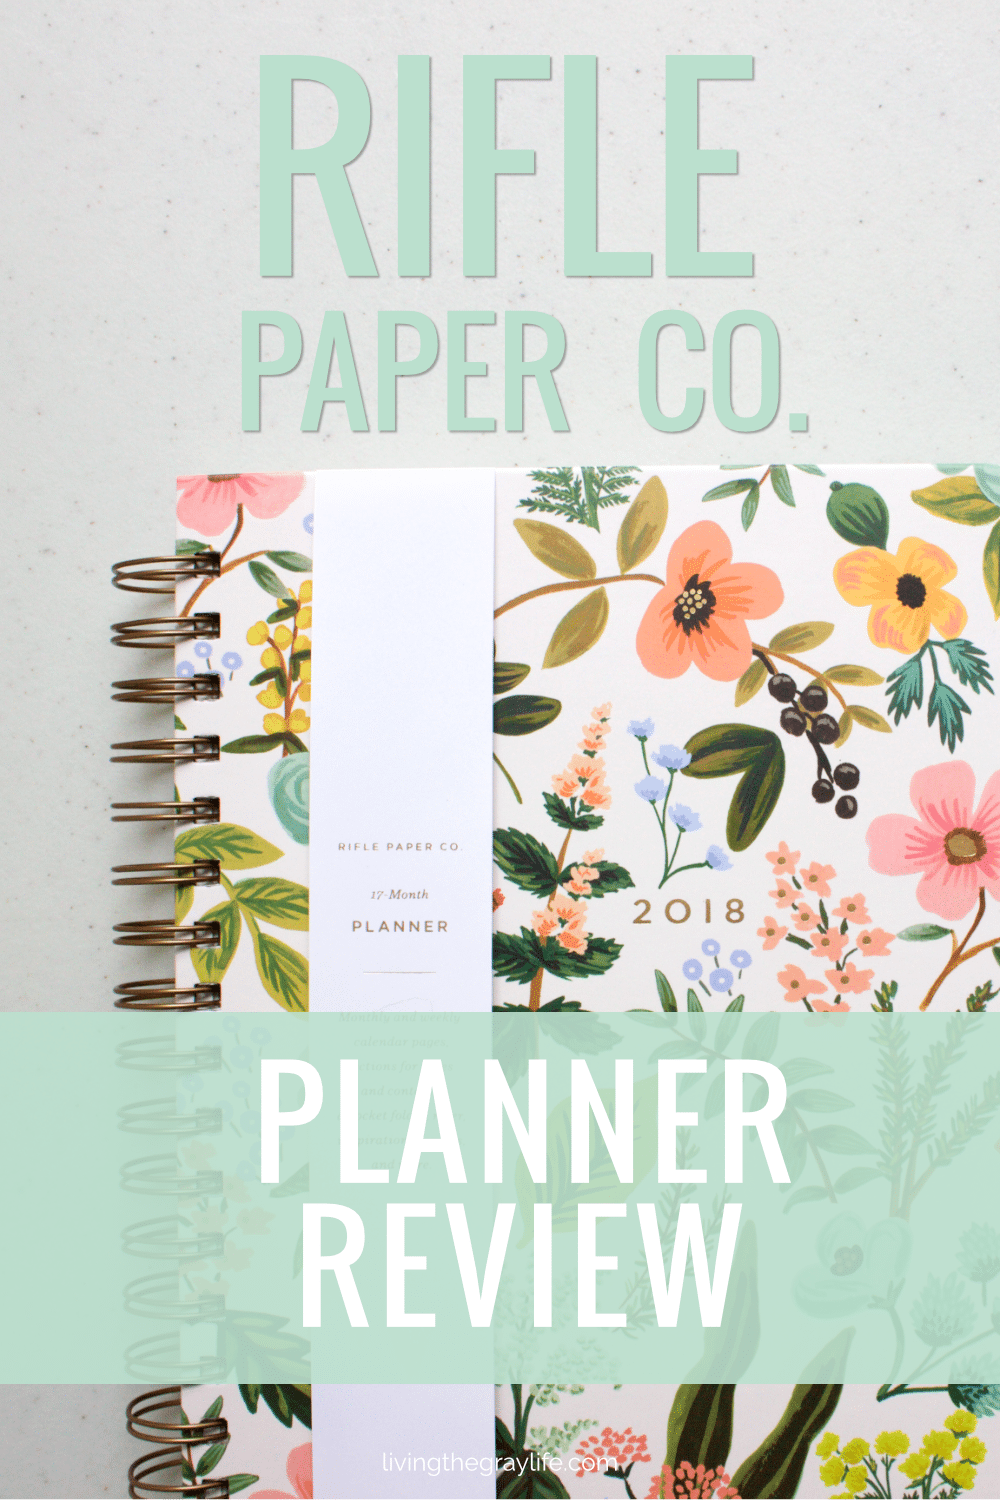 An in-depth review of Rifle Paper Co.'s 2018 planner. Perfect for college students, millennials, or busy moms. Stunning designs and great functionality.